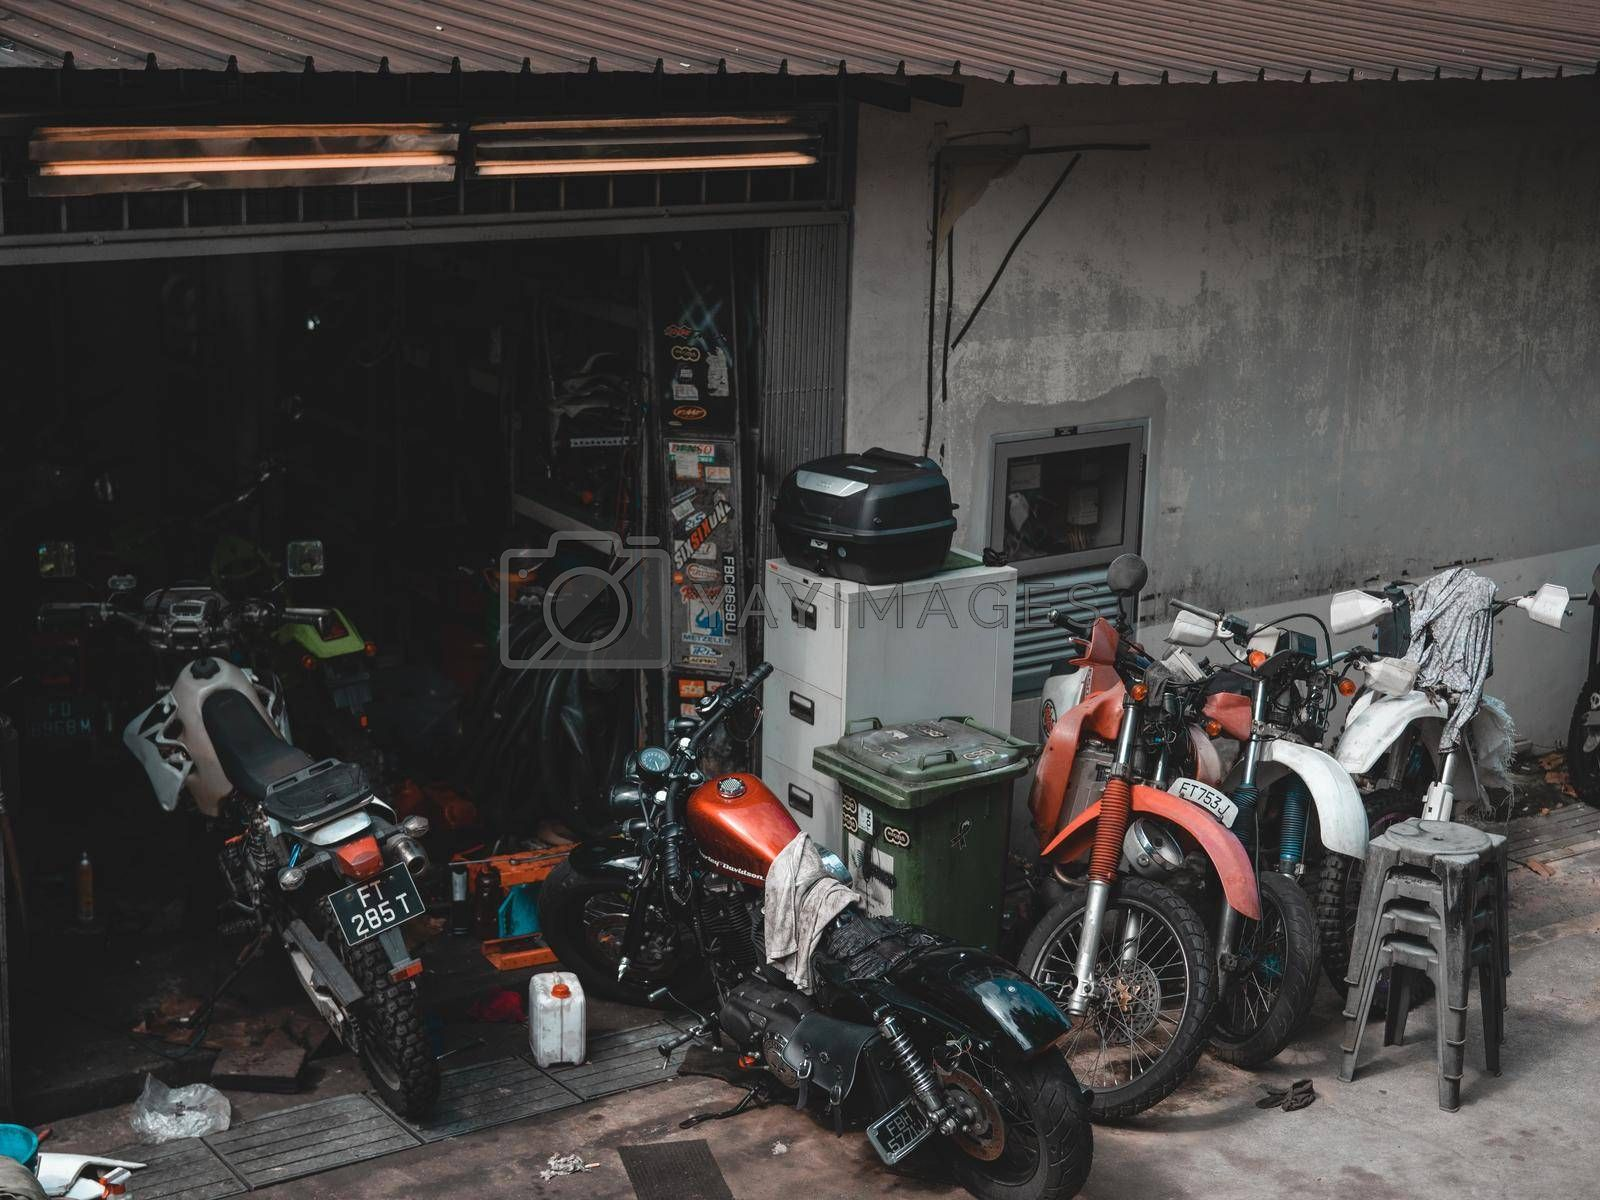 A motorcycle mechanic's garage in Singapore.